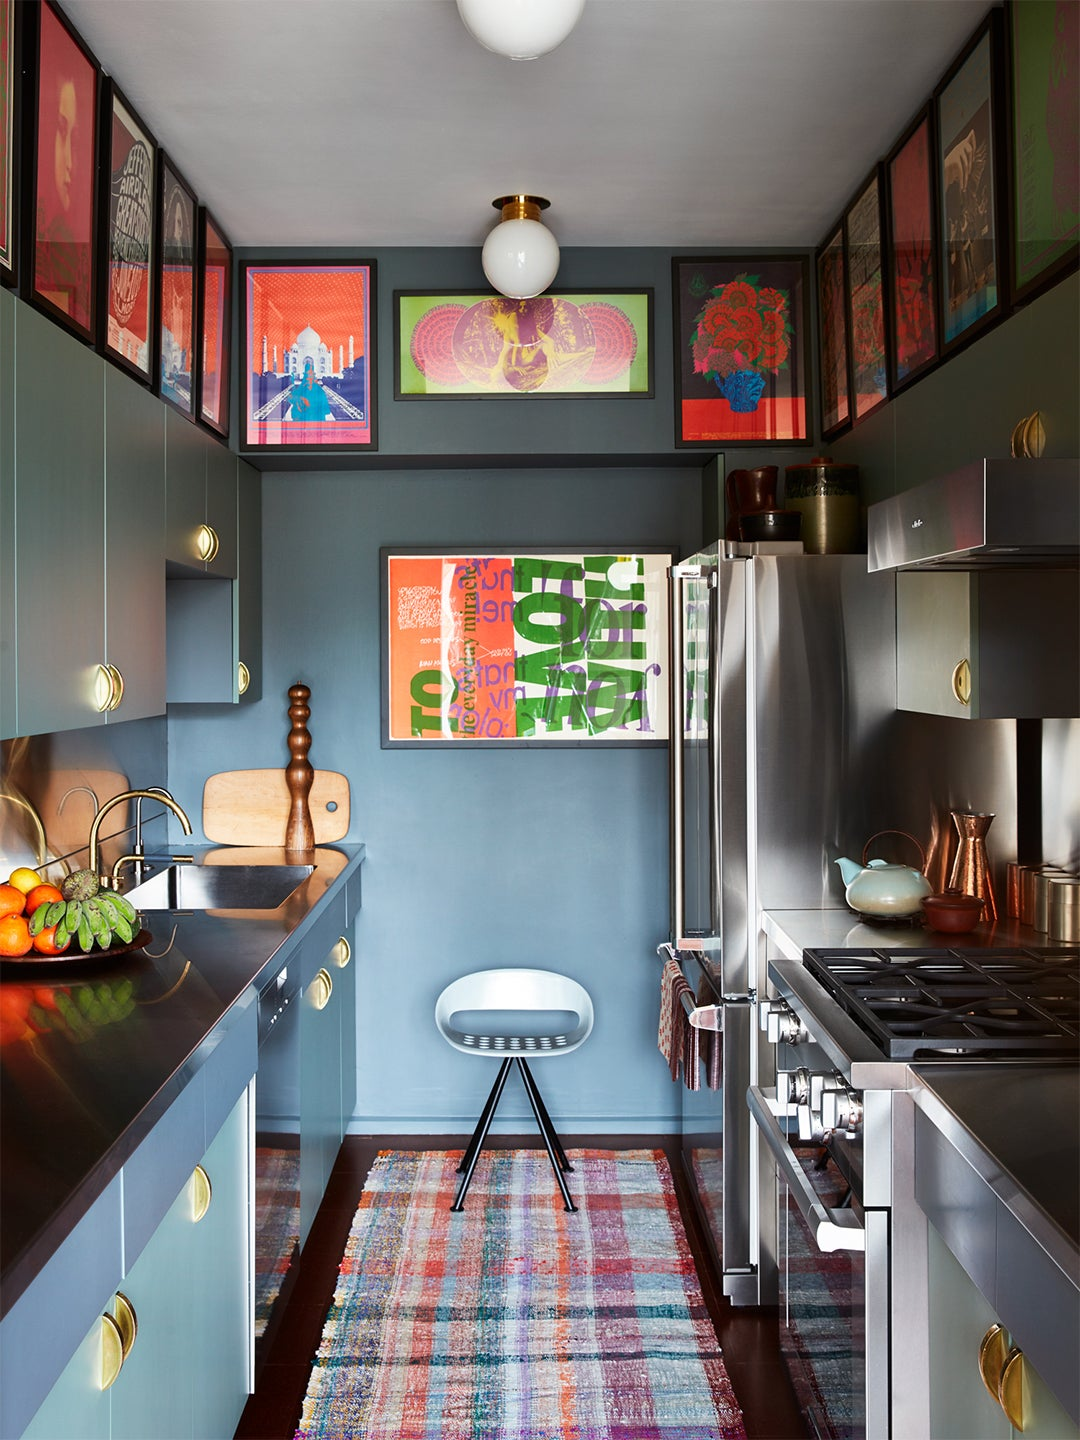 8 Ideas For Decorating Above Kitchen Cabinets